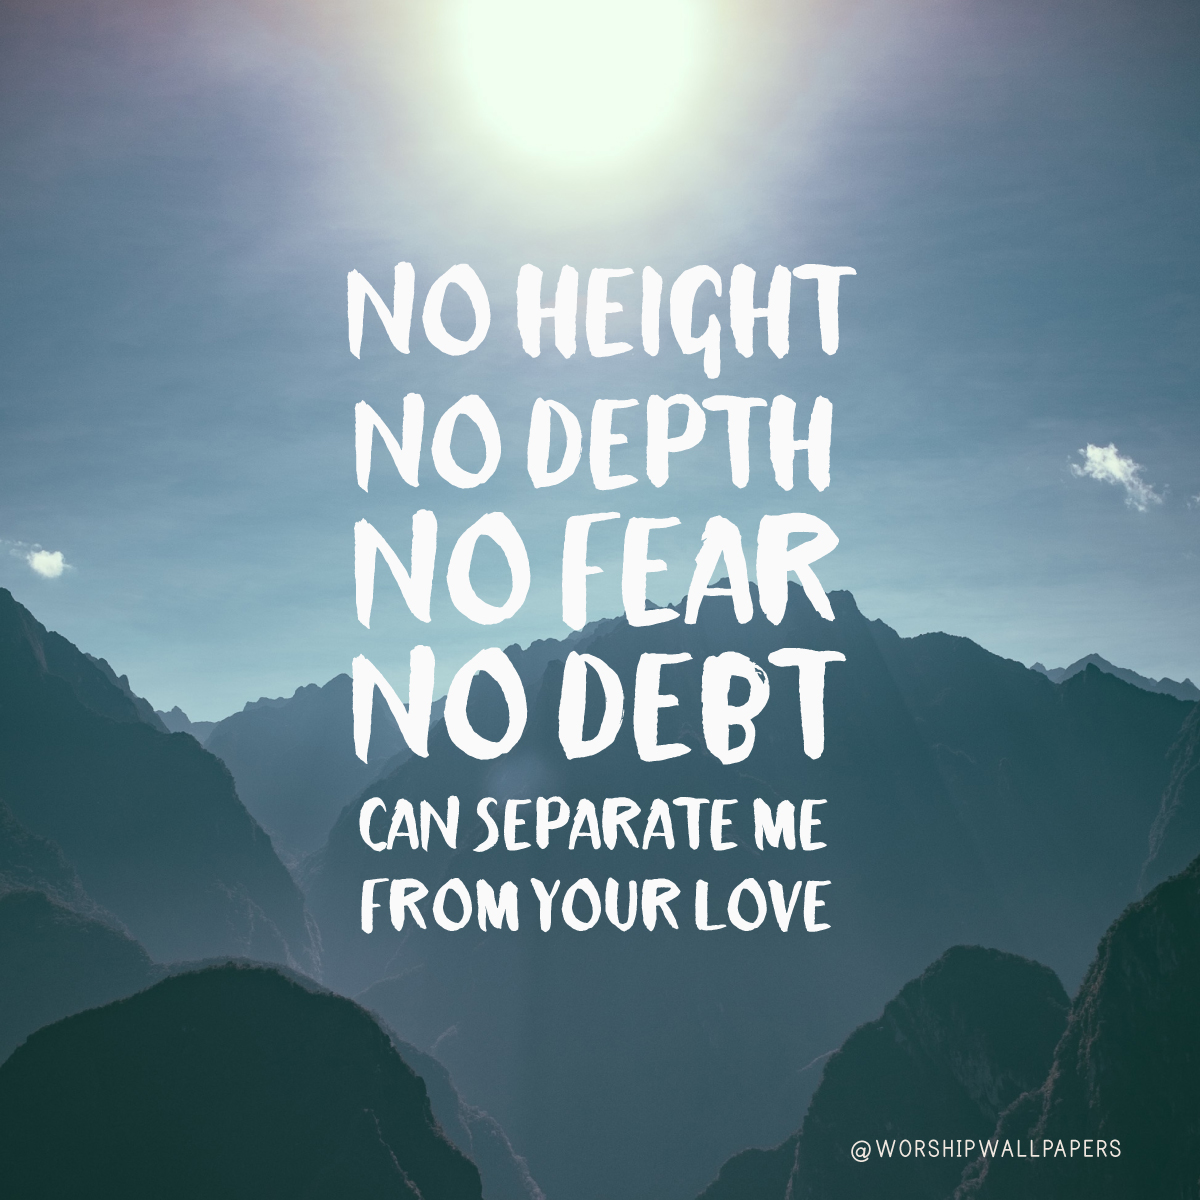 Wallpapers Of Christian Quotes Unstoppable Love Jesus Culture Worship Wallpapers